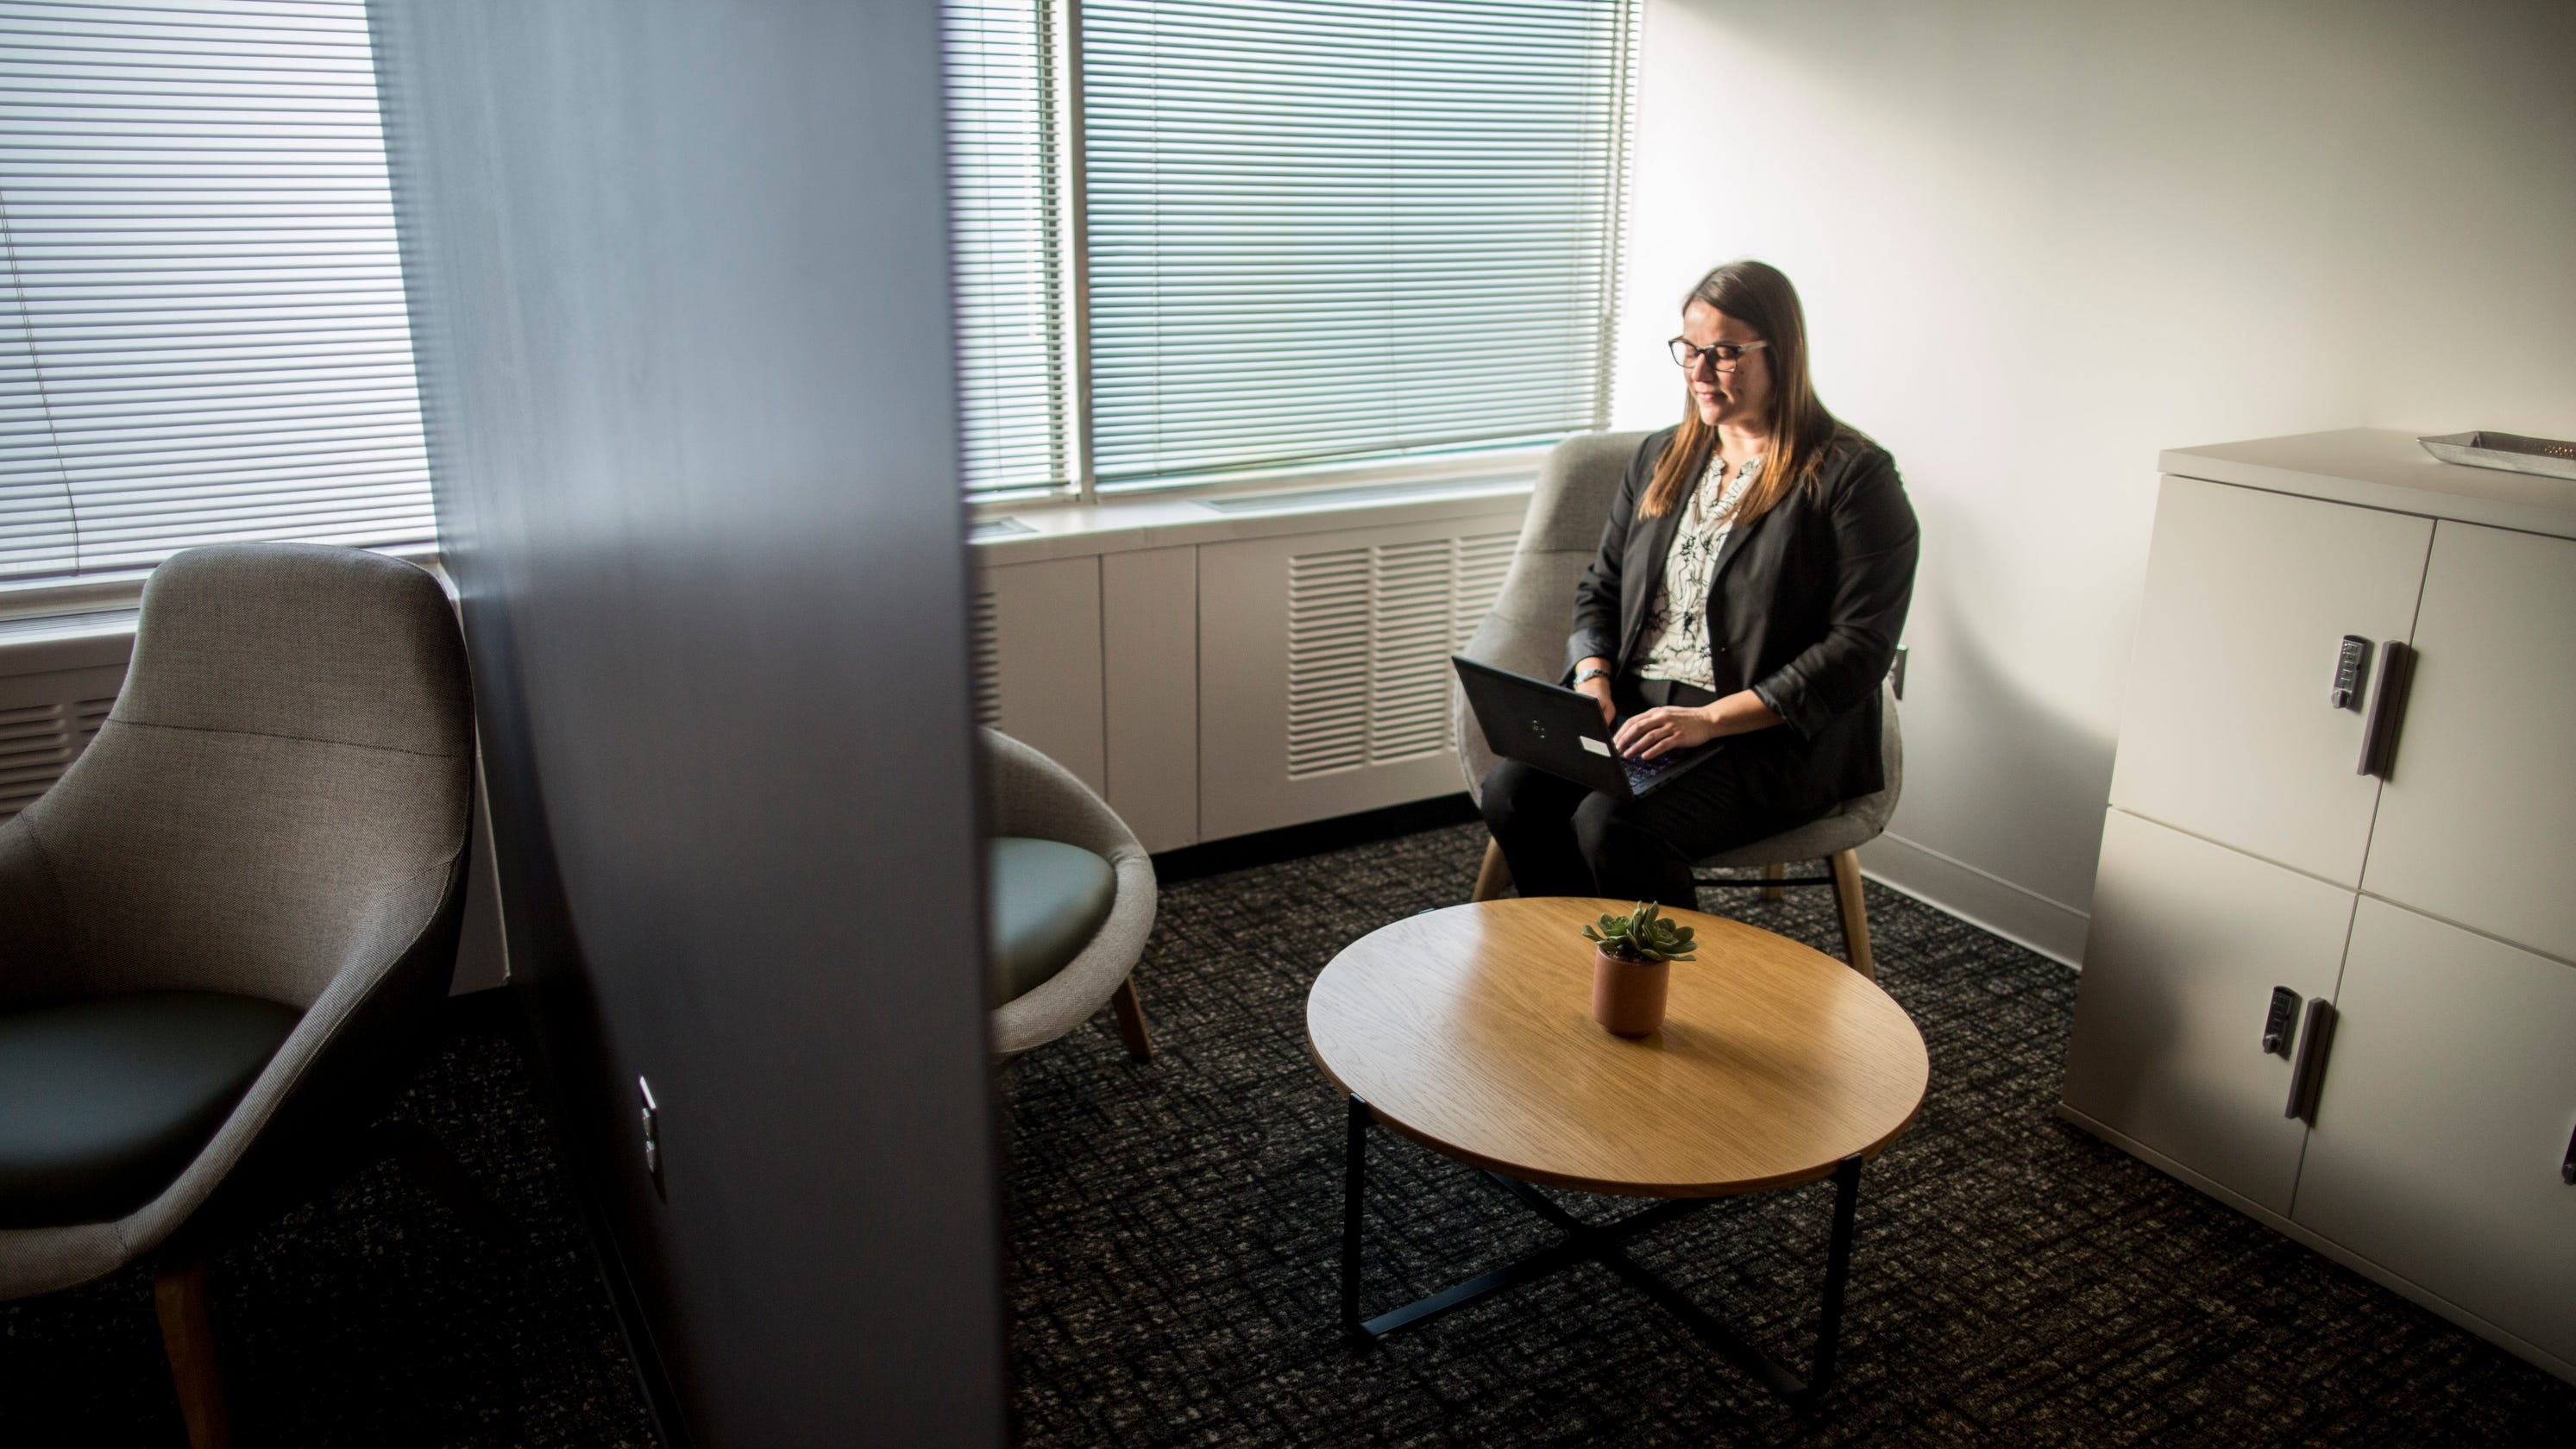 Mother S Rooms Make Transition Back To Work Easier For Working Moms